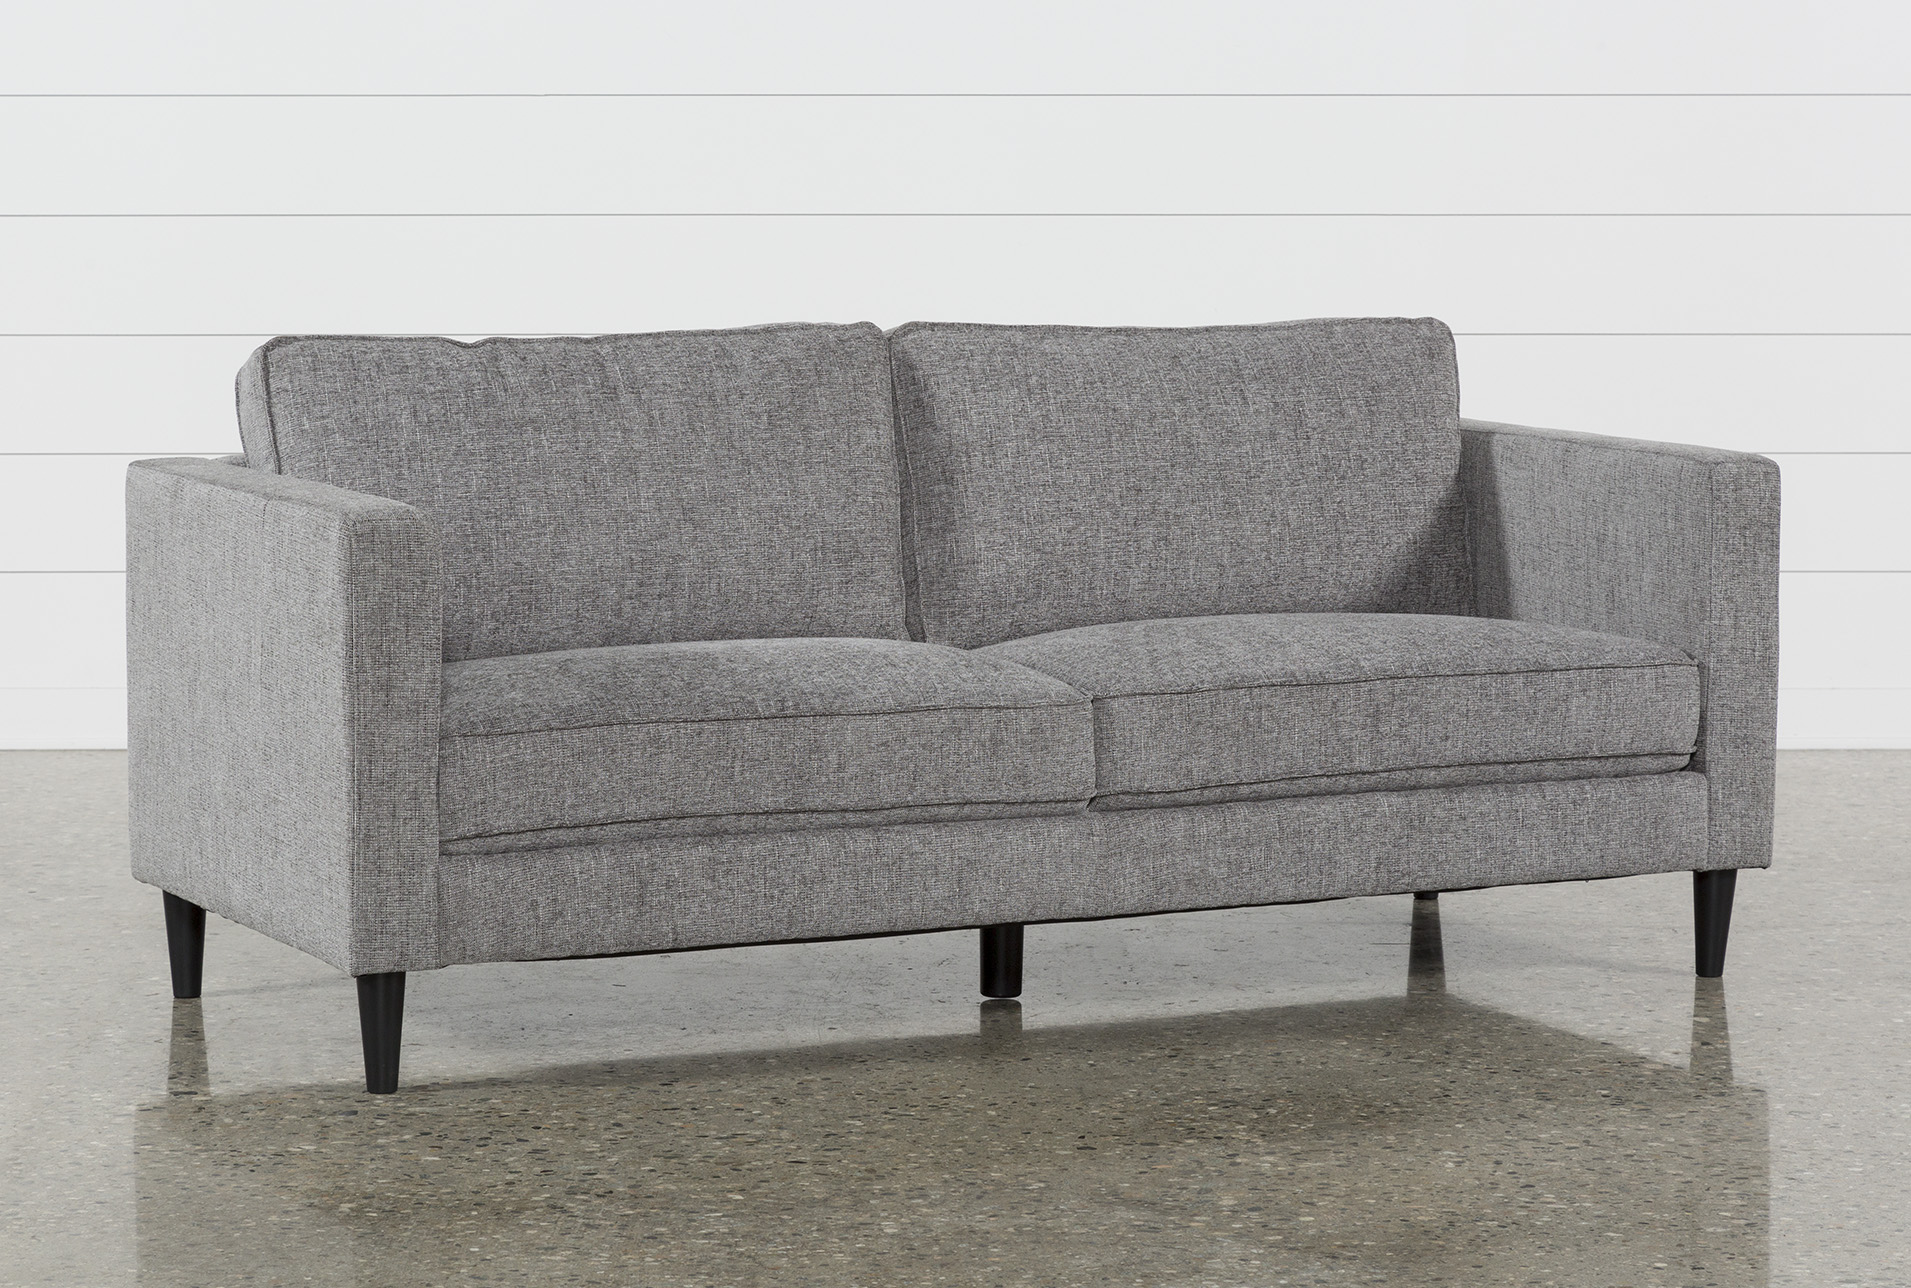 Cosmos Grey Sofa   Living Spaces Cosmos Grey Sofa  Qty  1  has been successfully added to your Cart